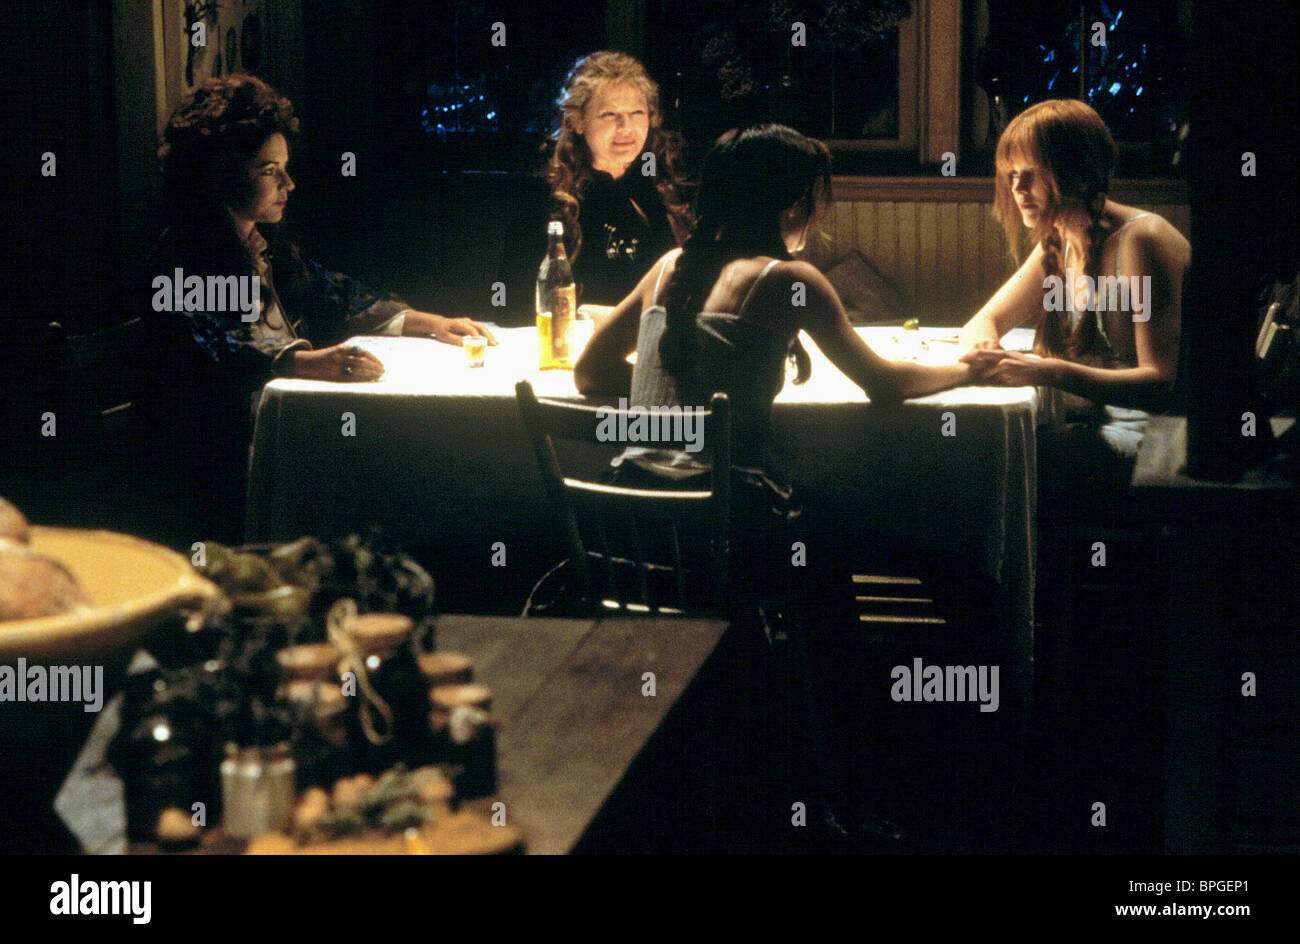 STOCKARD CHANNING DIANNE WIEST SANDRA BULLOCK NICOLE KIDMAN PRACTICAL MAGIC (1998) - Stock Image